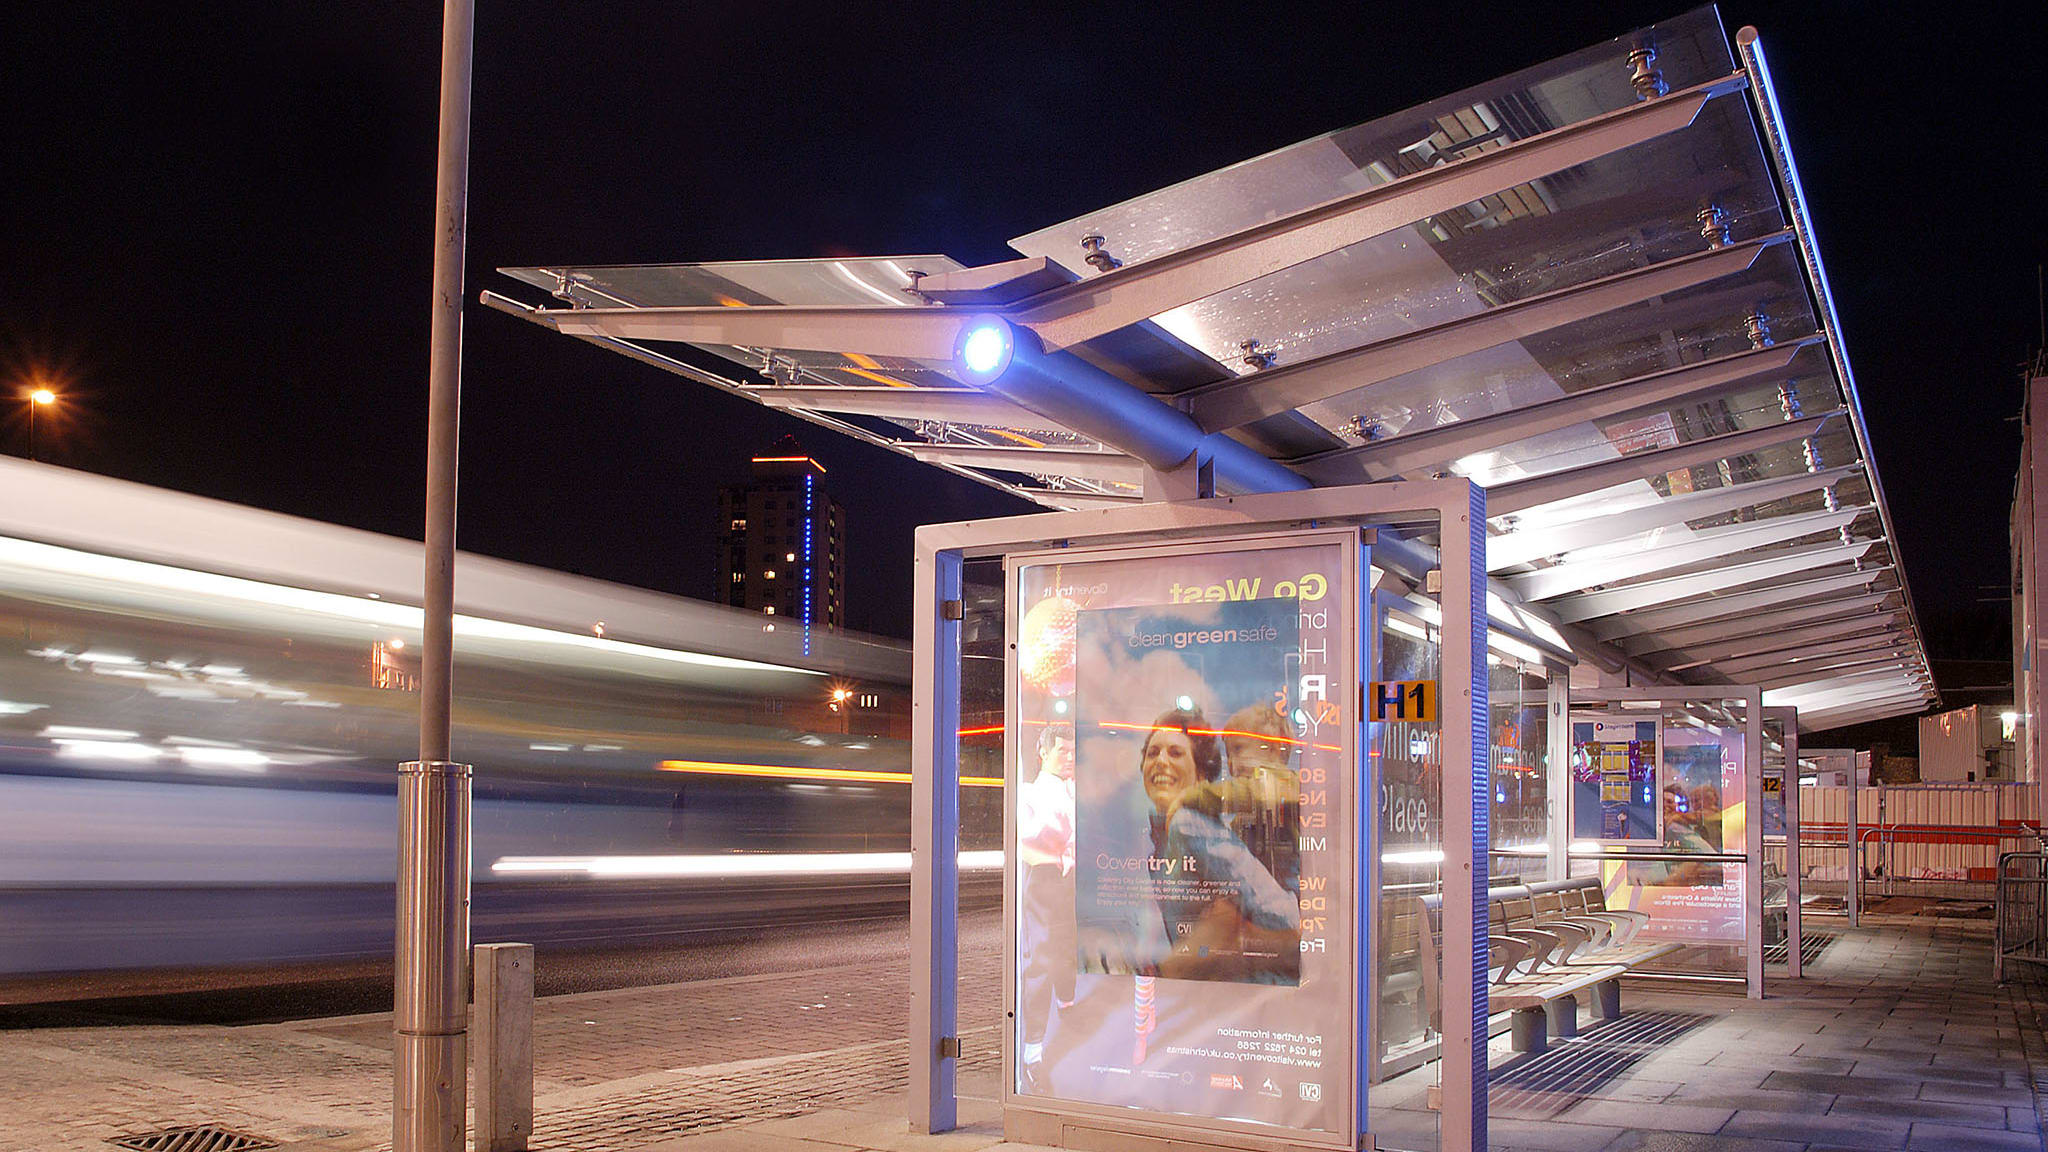 motis structires used as a bus stop lit up at night